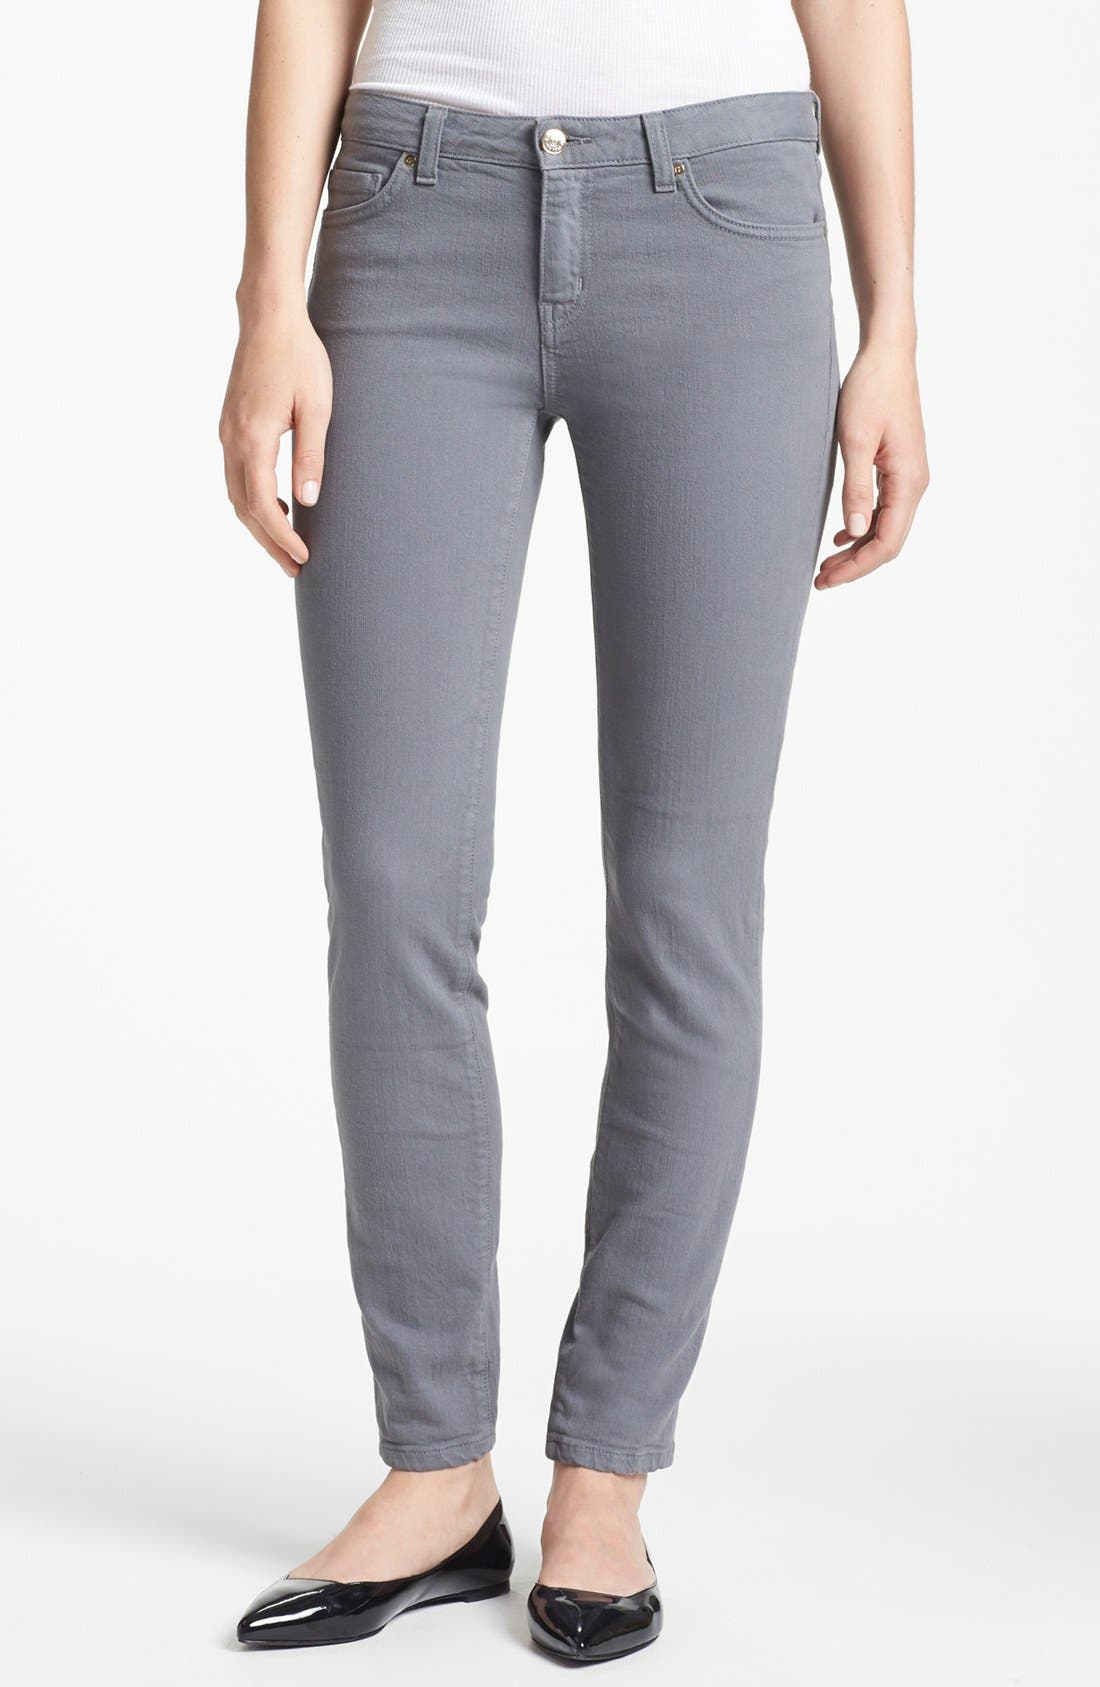 Alternate Image 1 Selected - kate spade new york 'broome street' overdyed skinny jeans (Medium Grey)